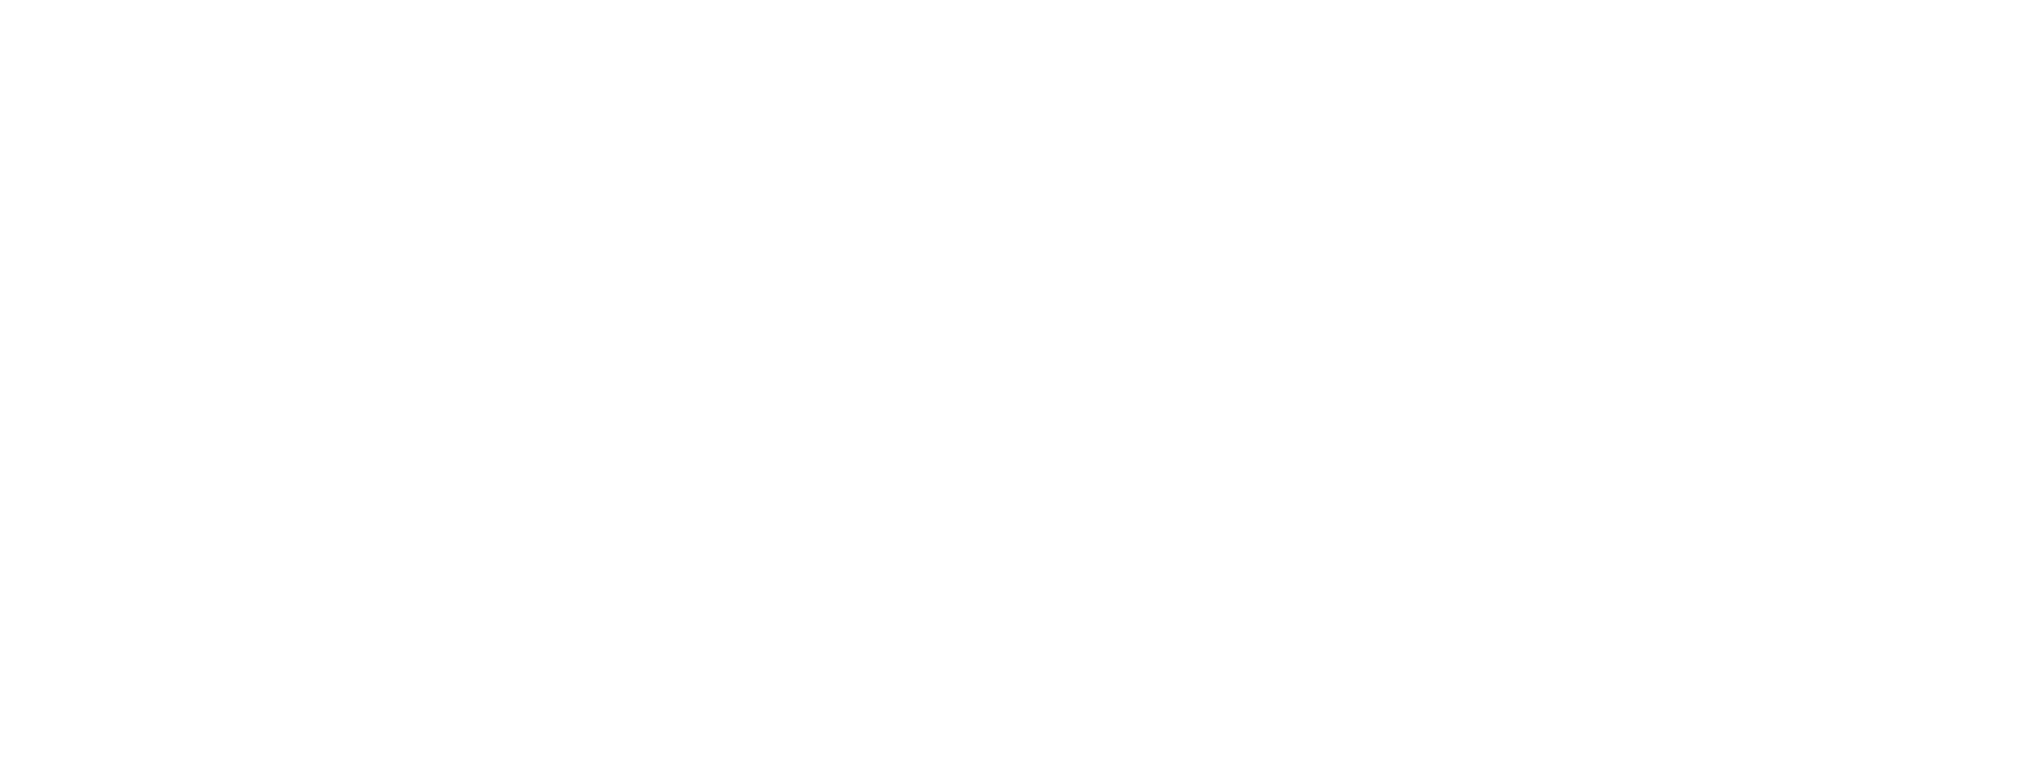 Digitala.press